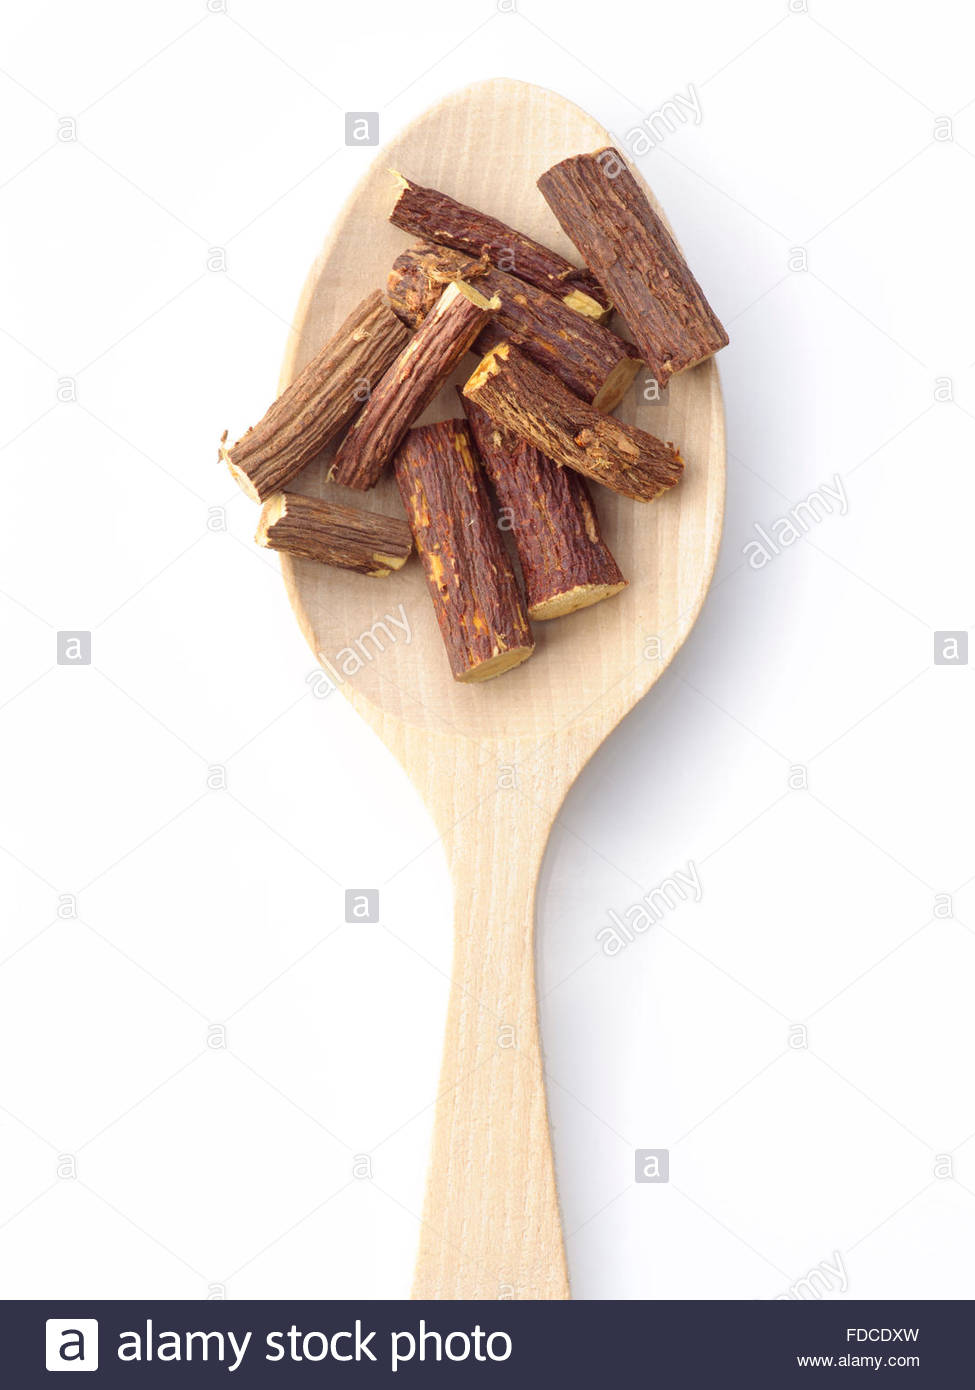 licorice stick ready for cocktail - Stock Image